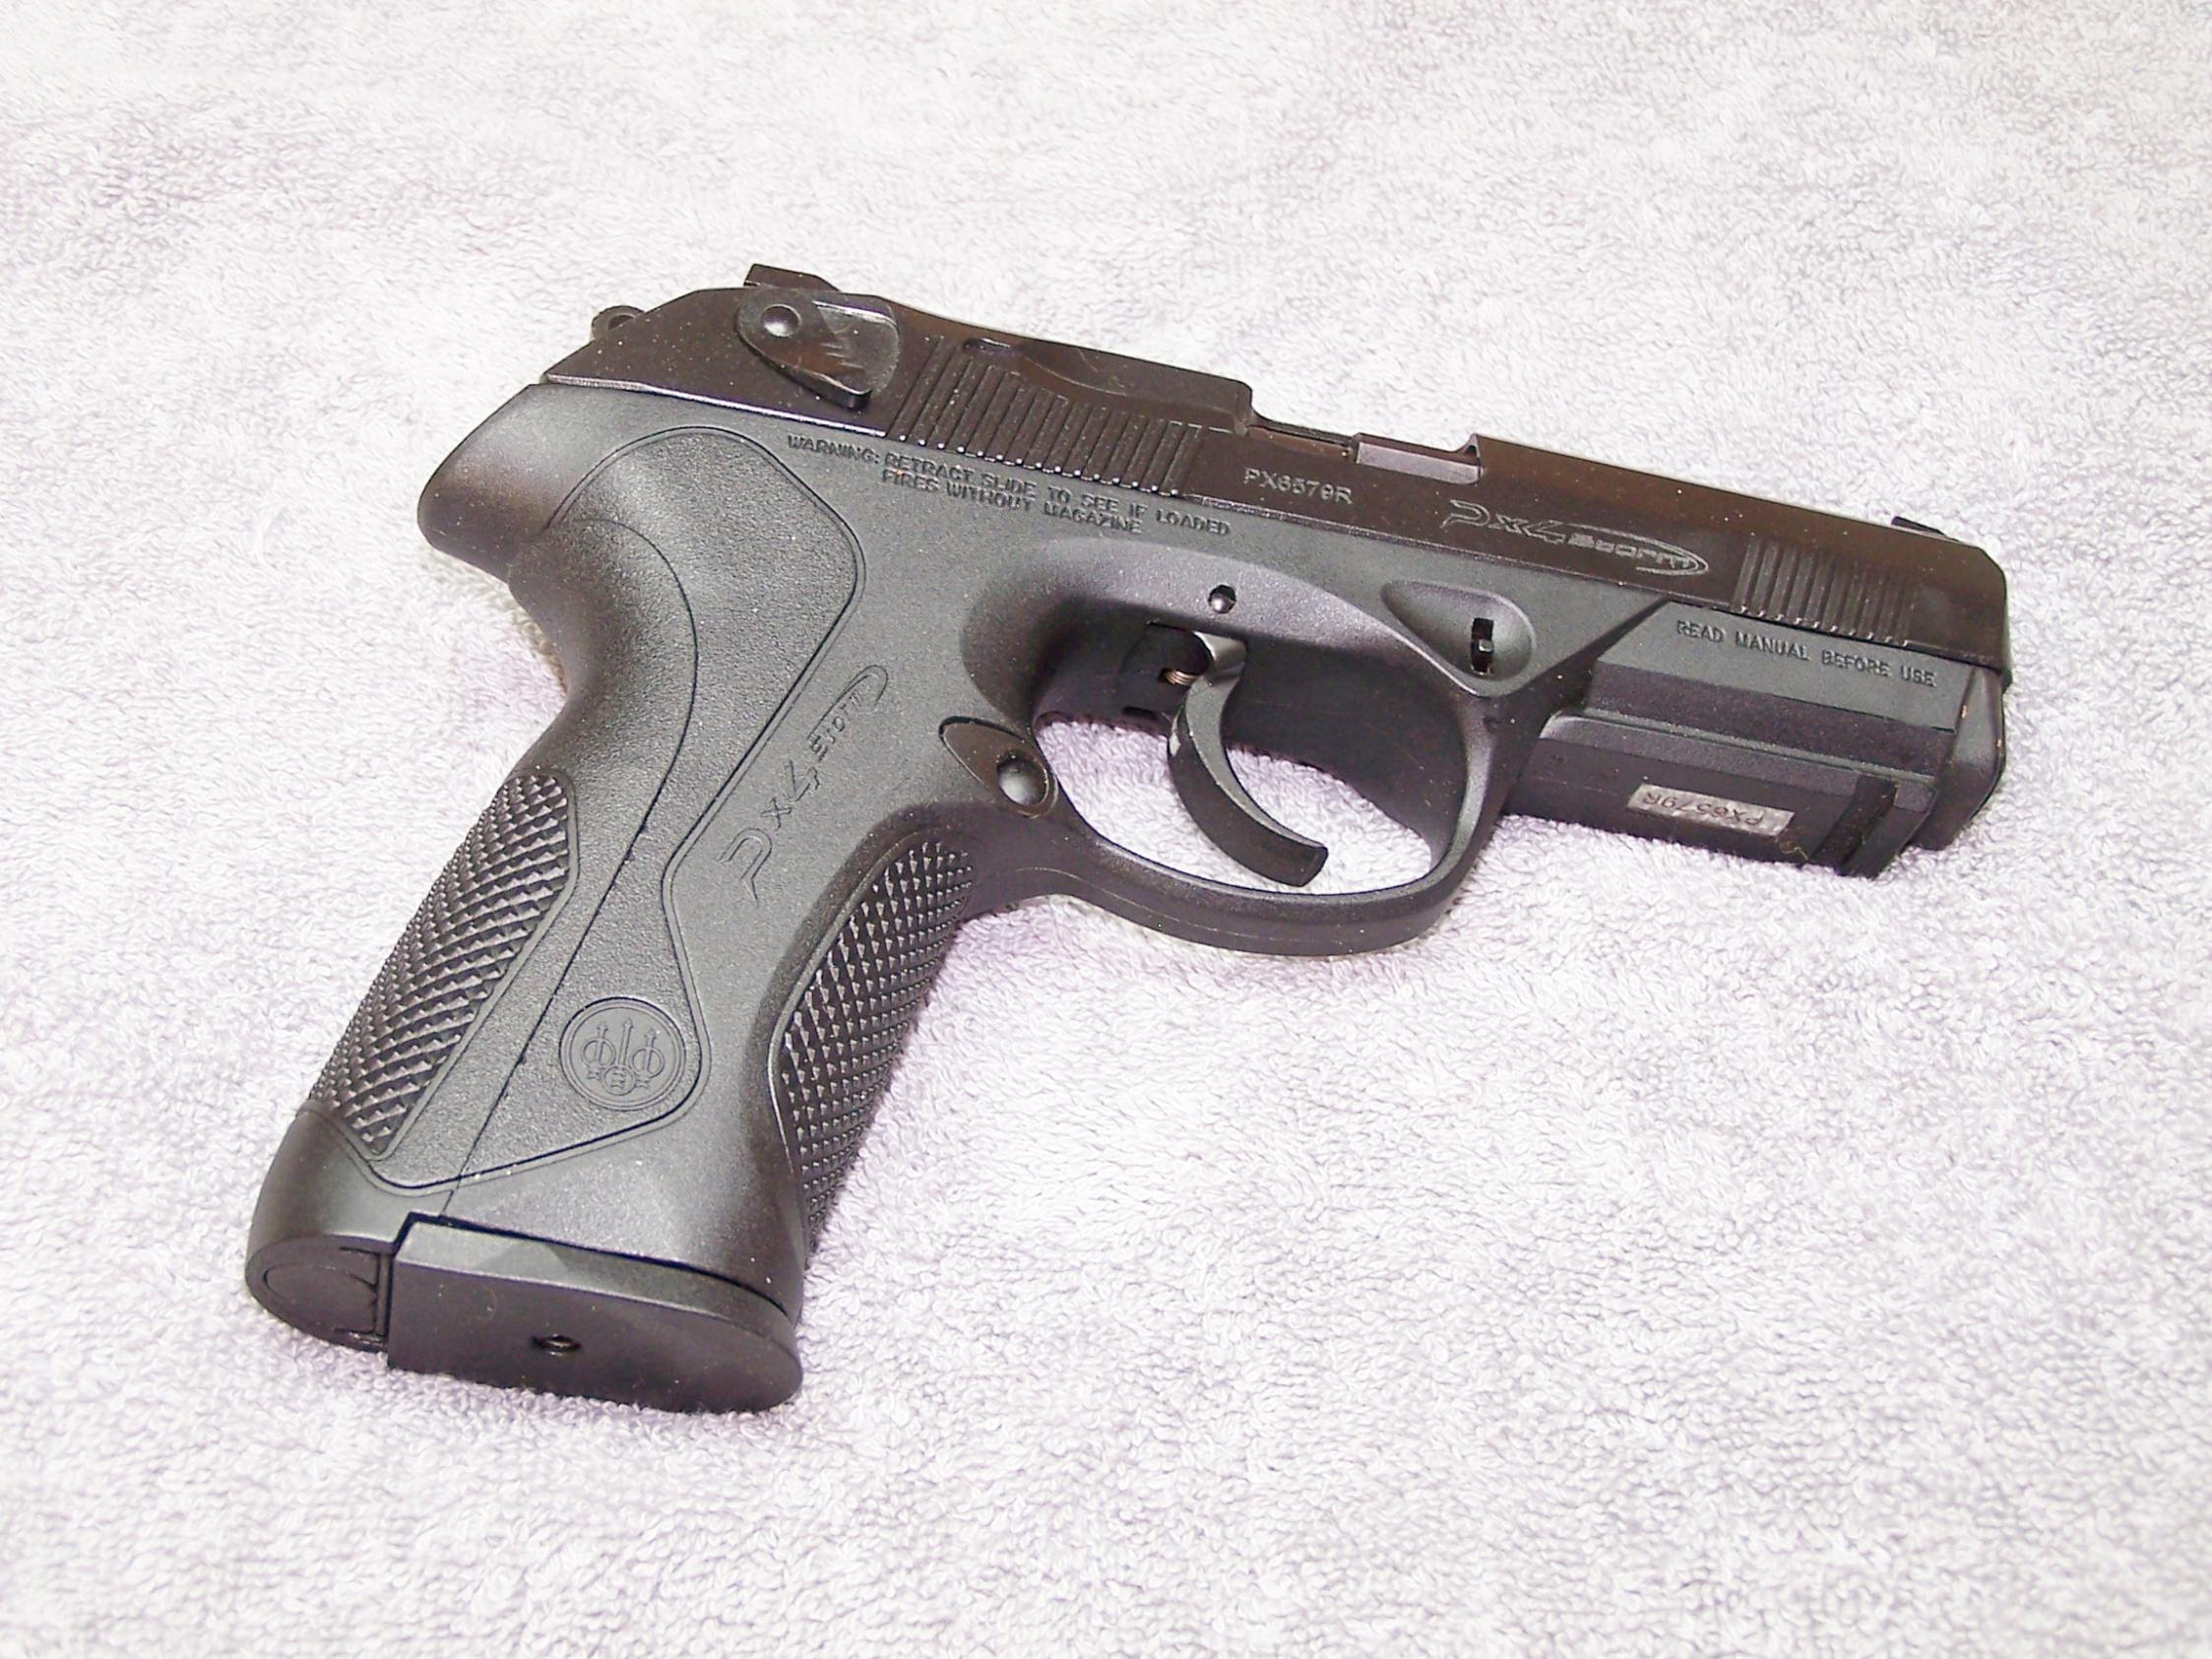 Which soft grip for PX4 SC?-012.jpg